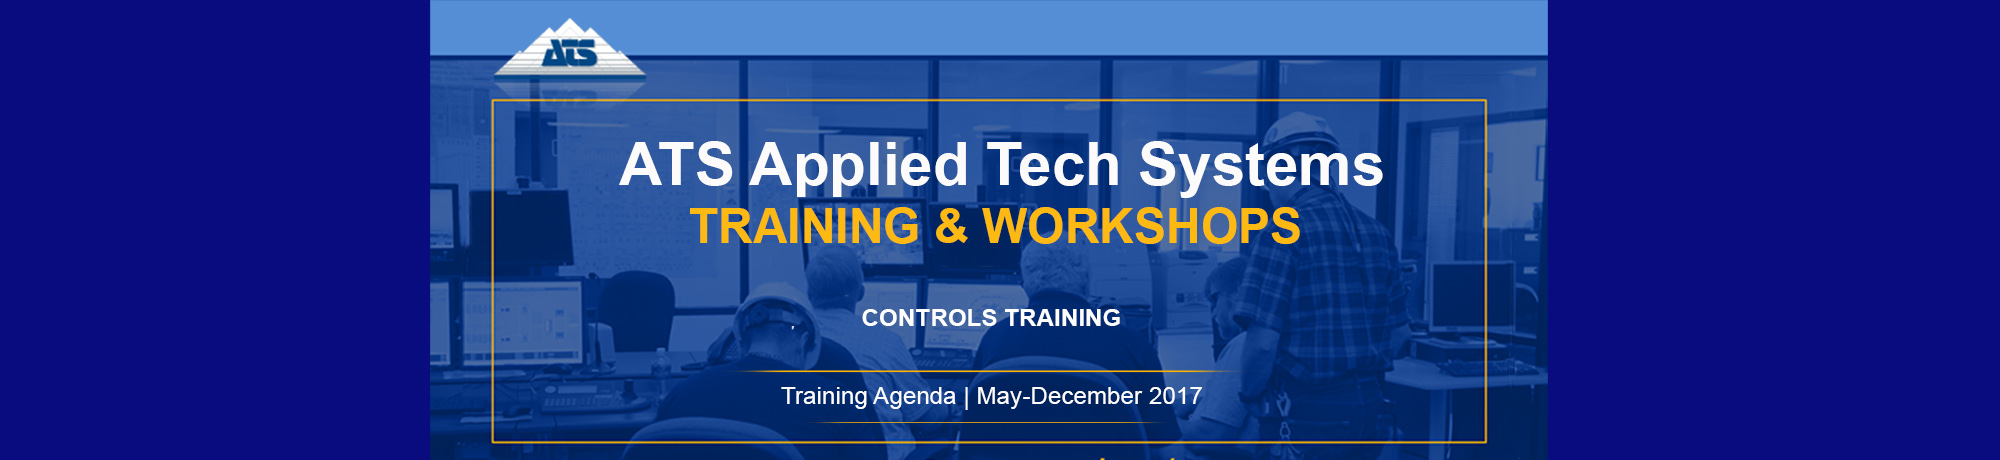 ATS Applied Tech Systems Training - Controls Training